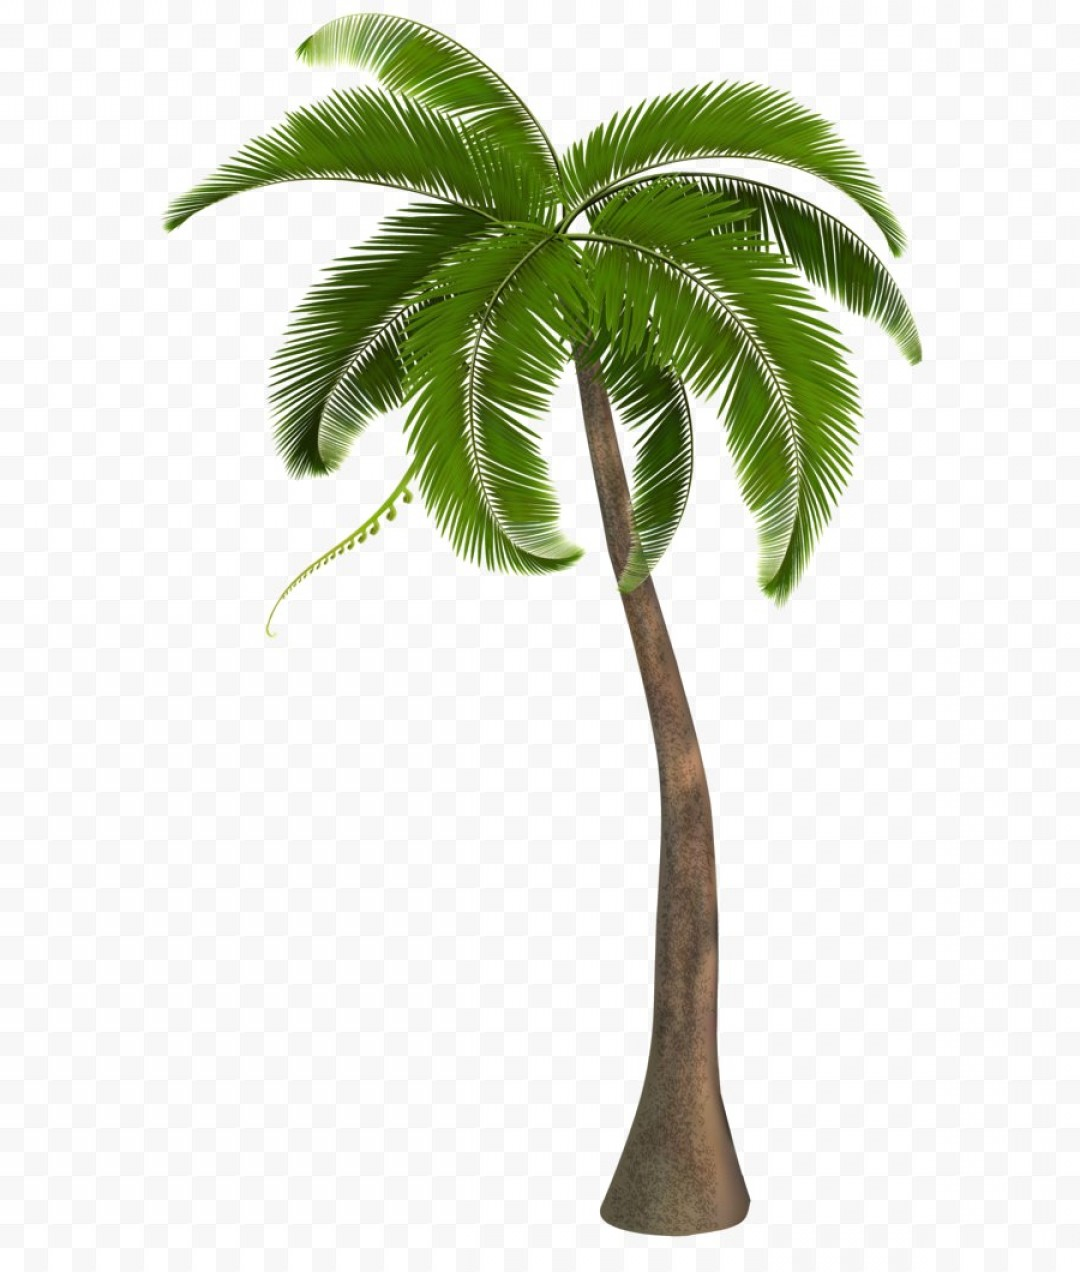 Beautiful Palm Tree Png Clipart Image Acbcddba.